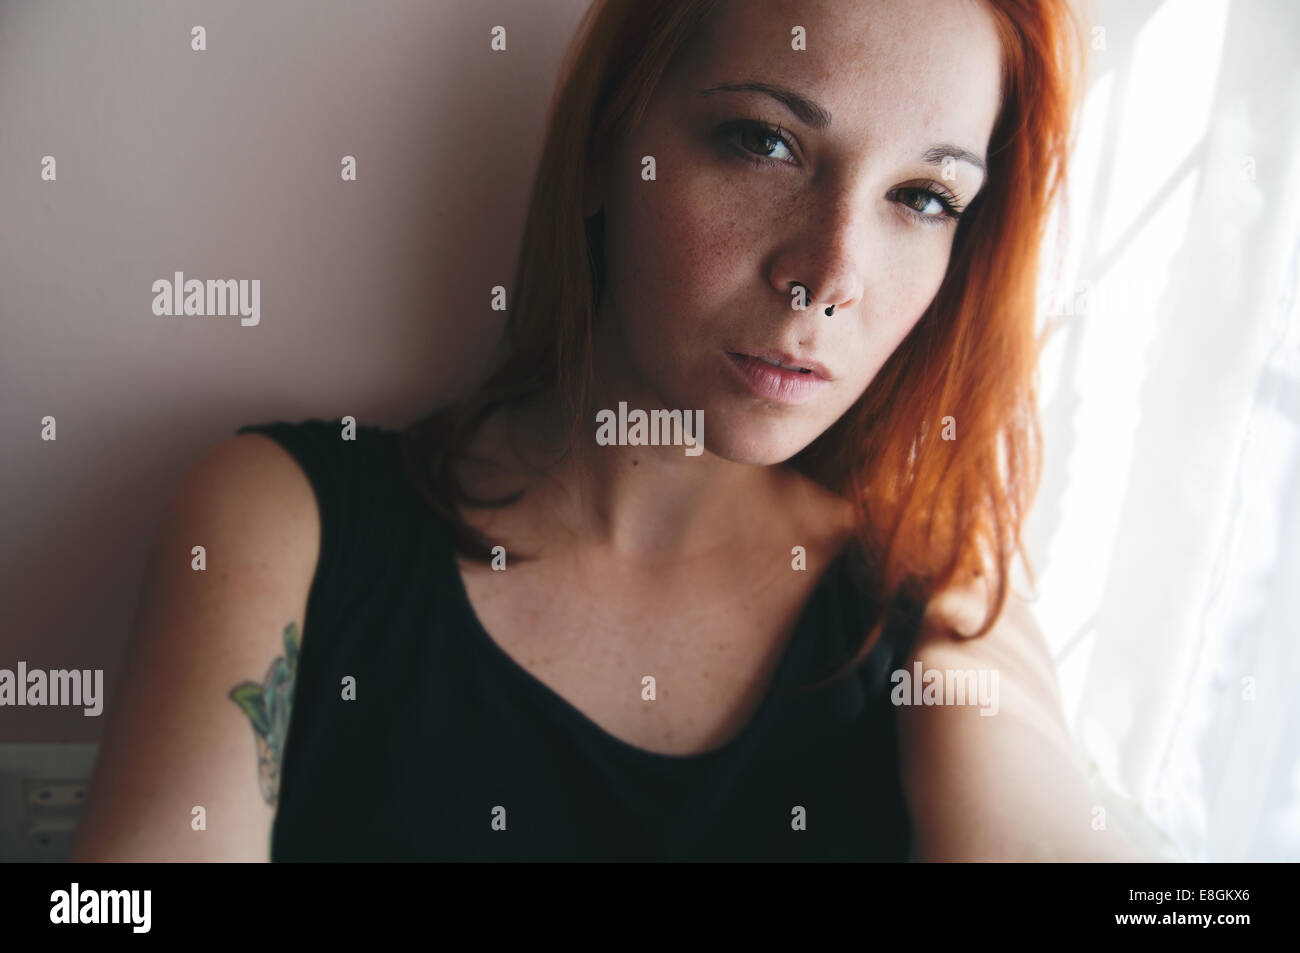 Selfie of young woman - Stock Image